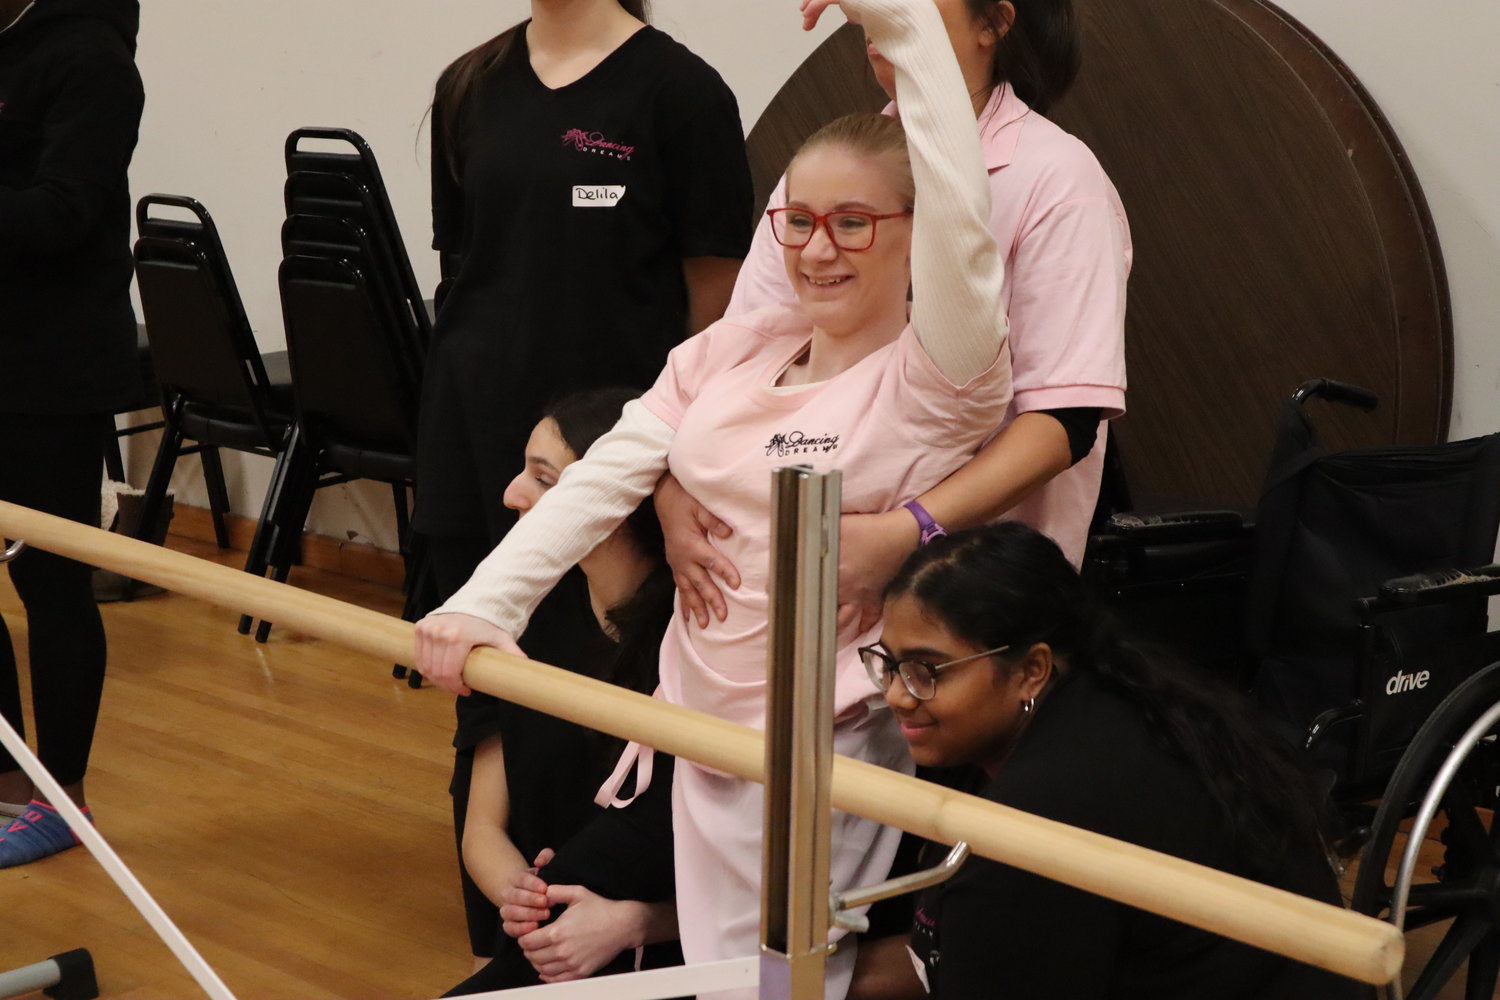 Abigail Penny, a young Merokean with spina bifida, expresses her movements through her arms while holding the barre.